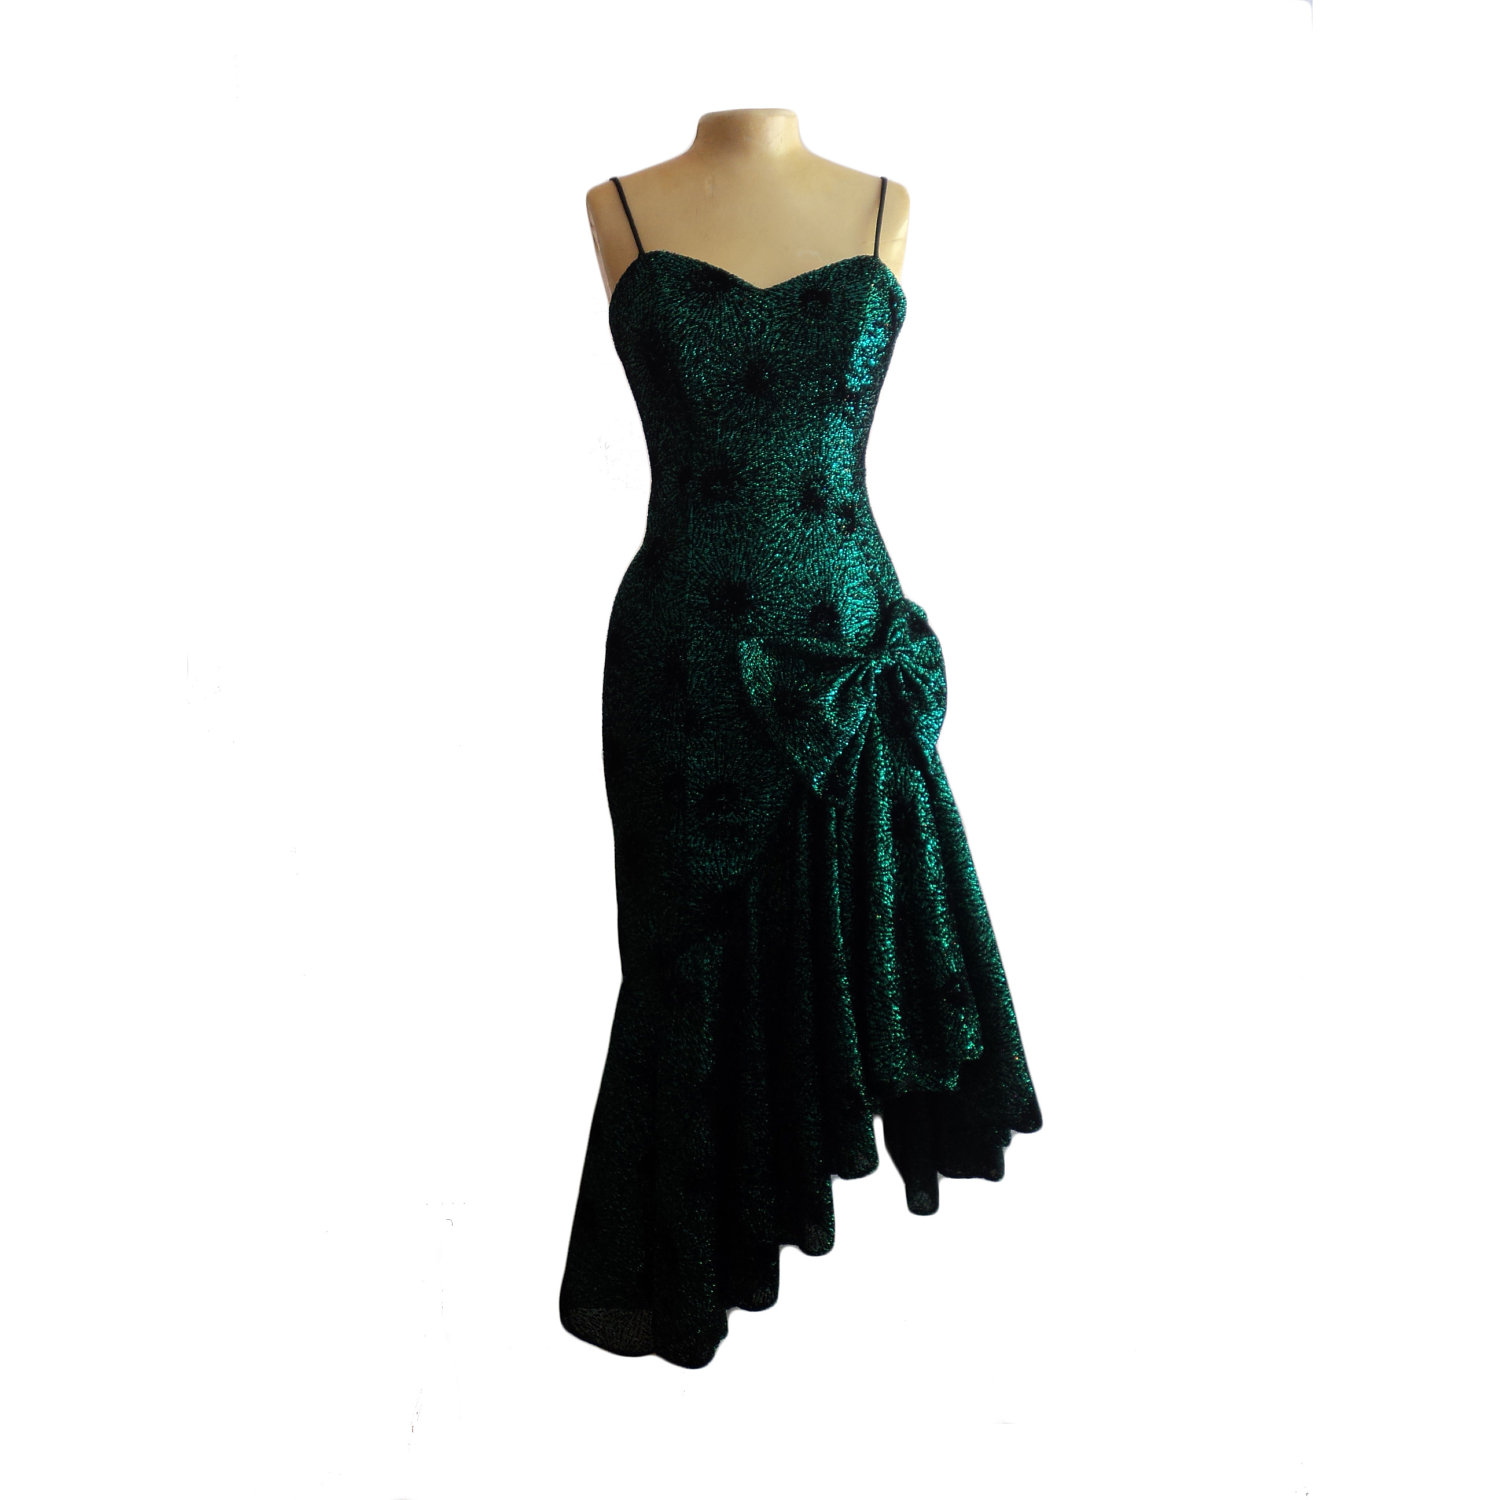 breakfastwhisky images Green Tango Dress HD wallpaper and background ...